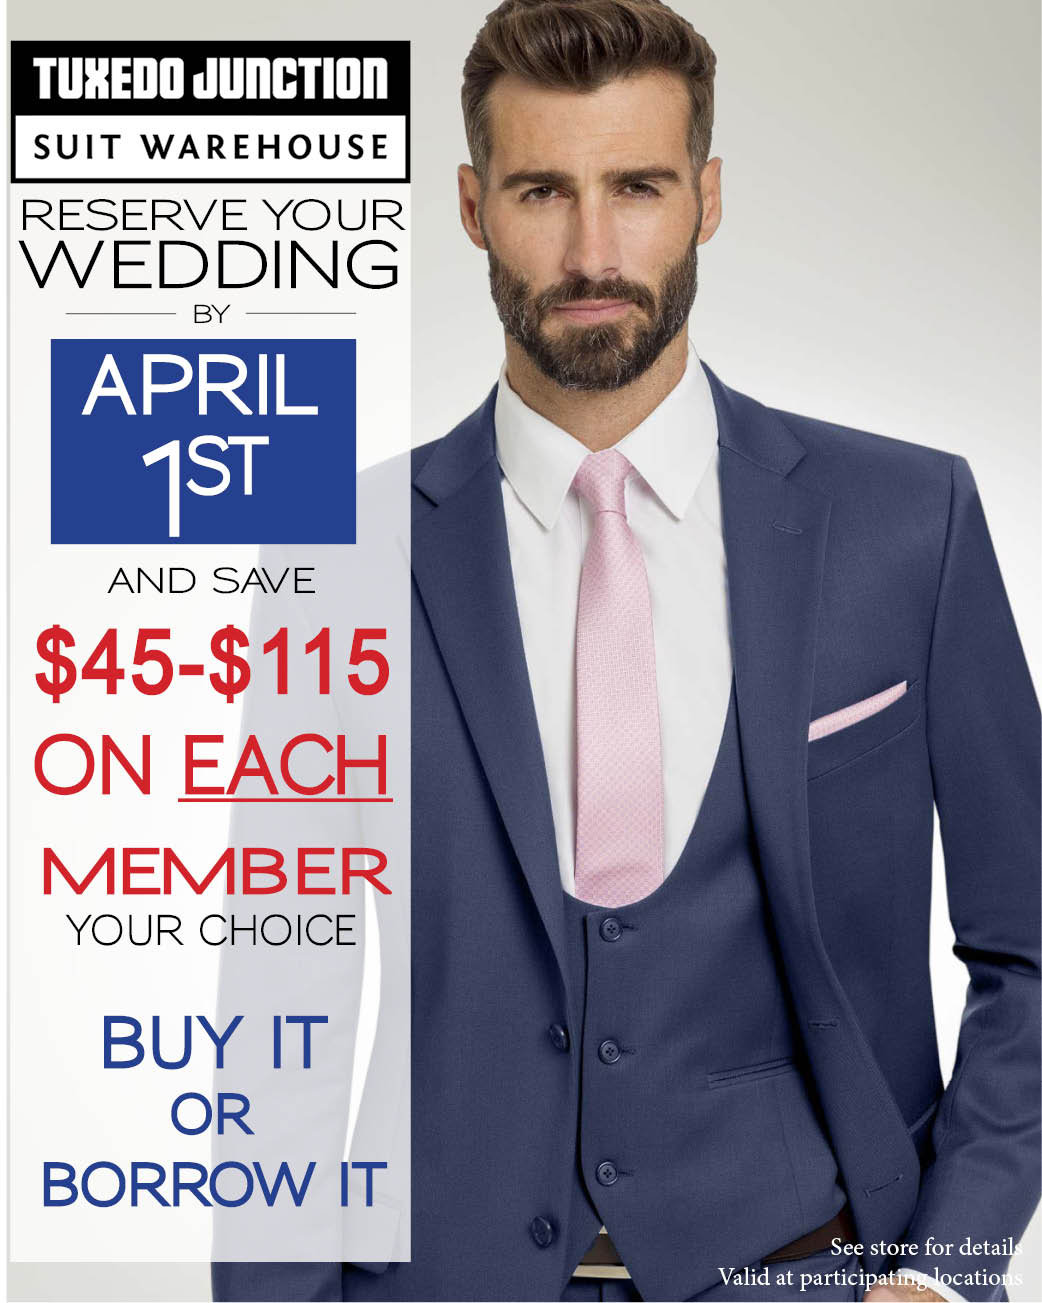 Reserve your wedding NOW and save $70 off suits and tuxes